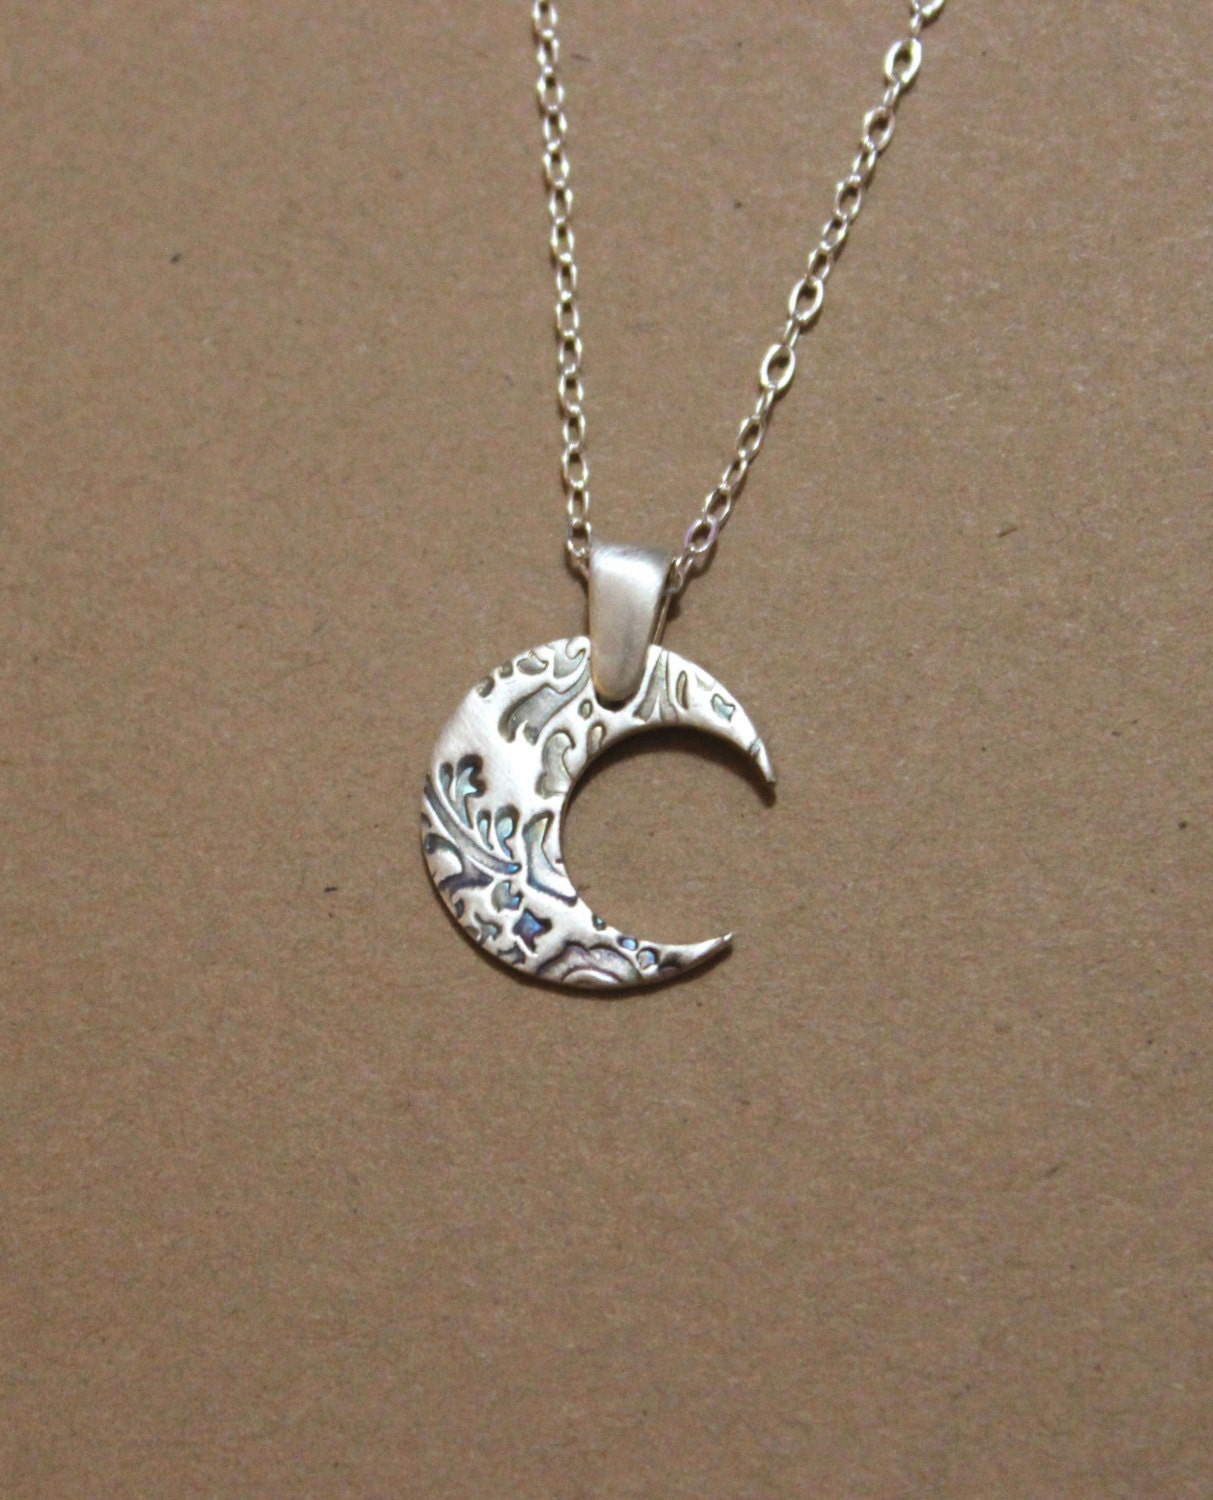 Choker Necklace Etsy: Handmade Sterling Silver Moon Necklace Moon Jewelry By